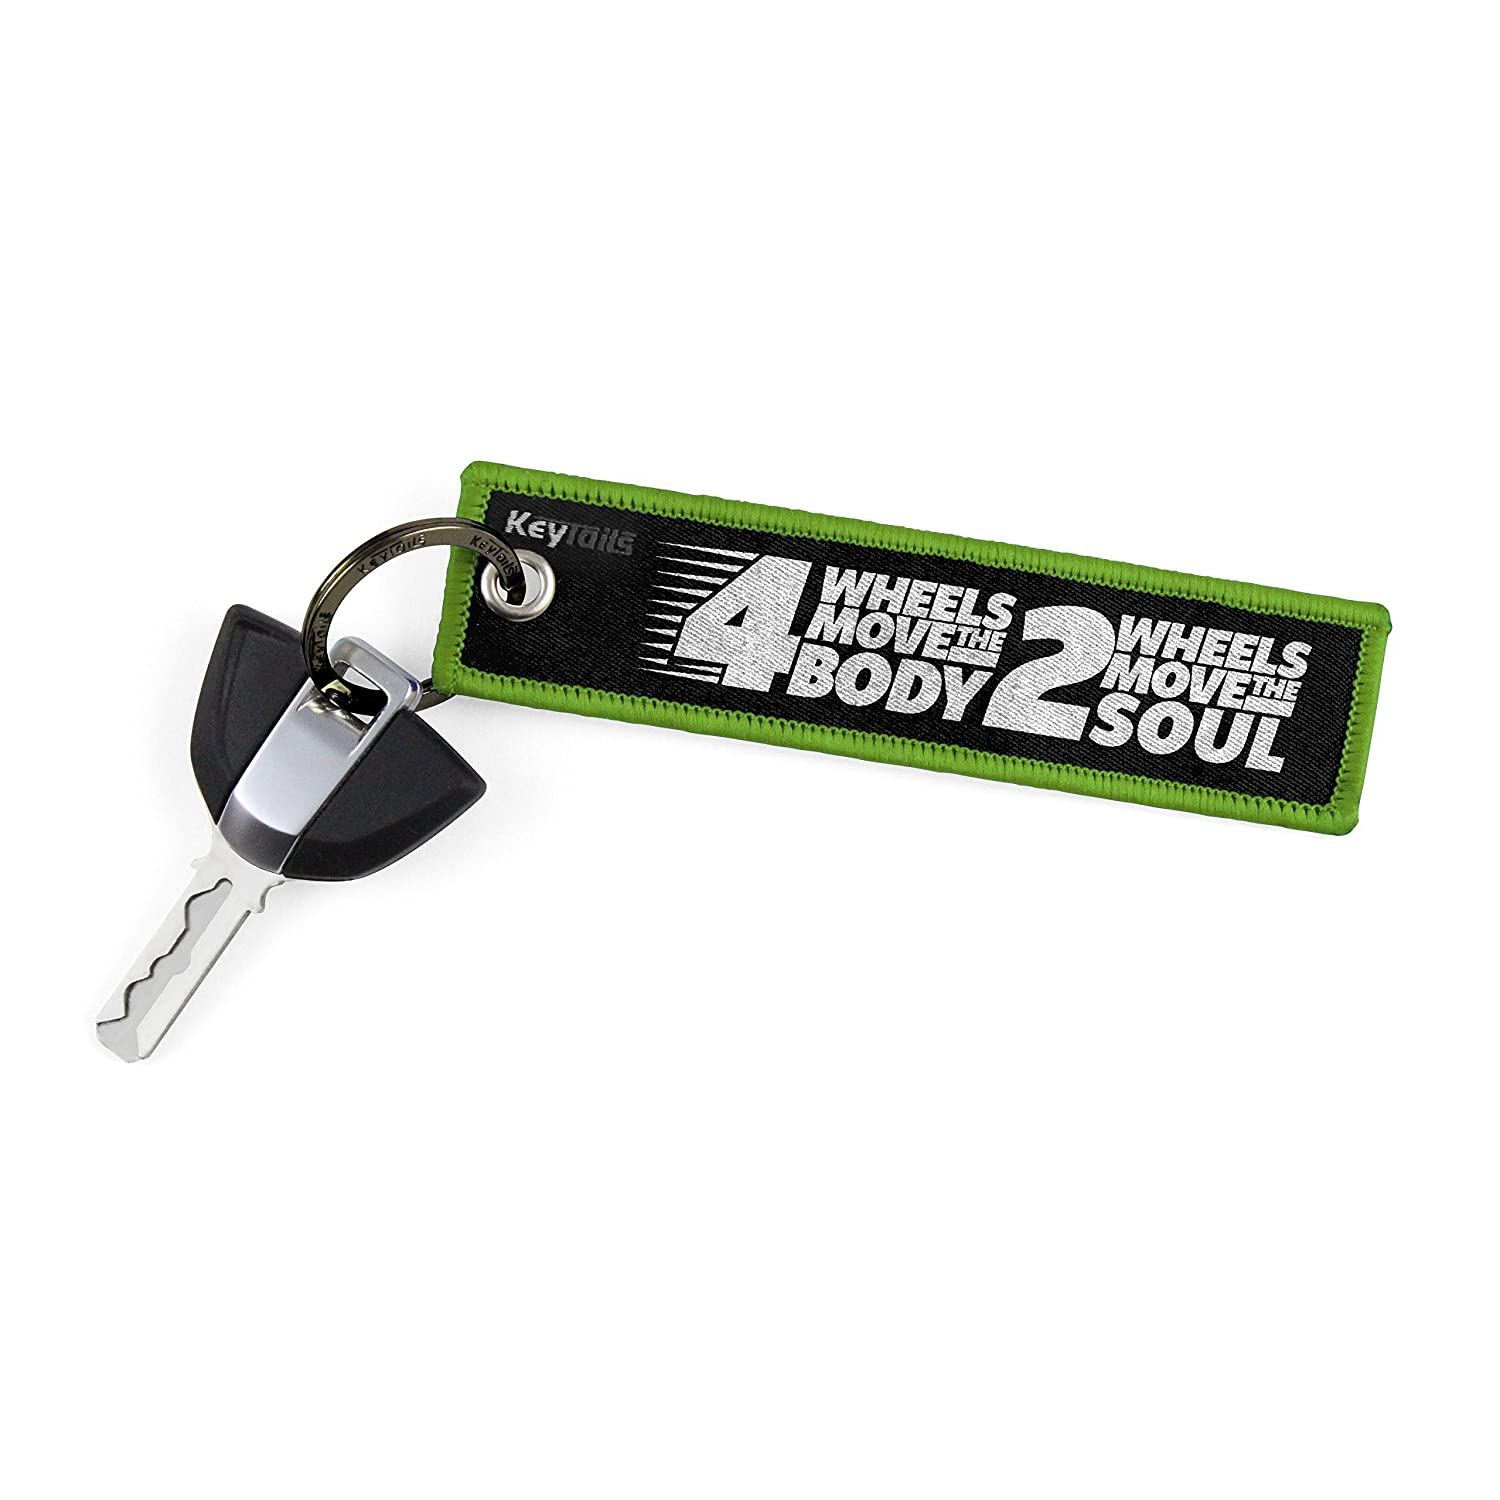 4 Wheels Move The Body, 2 Wheels Move The Soul Premium Quality Key Tag for Motorcycle Scooter ATV UTV KEYTAILS Keychains